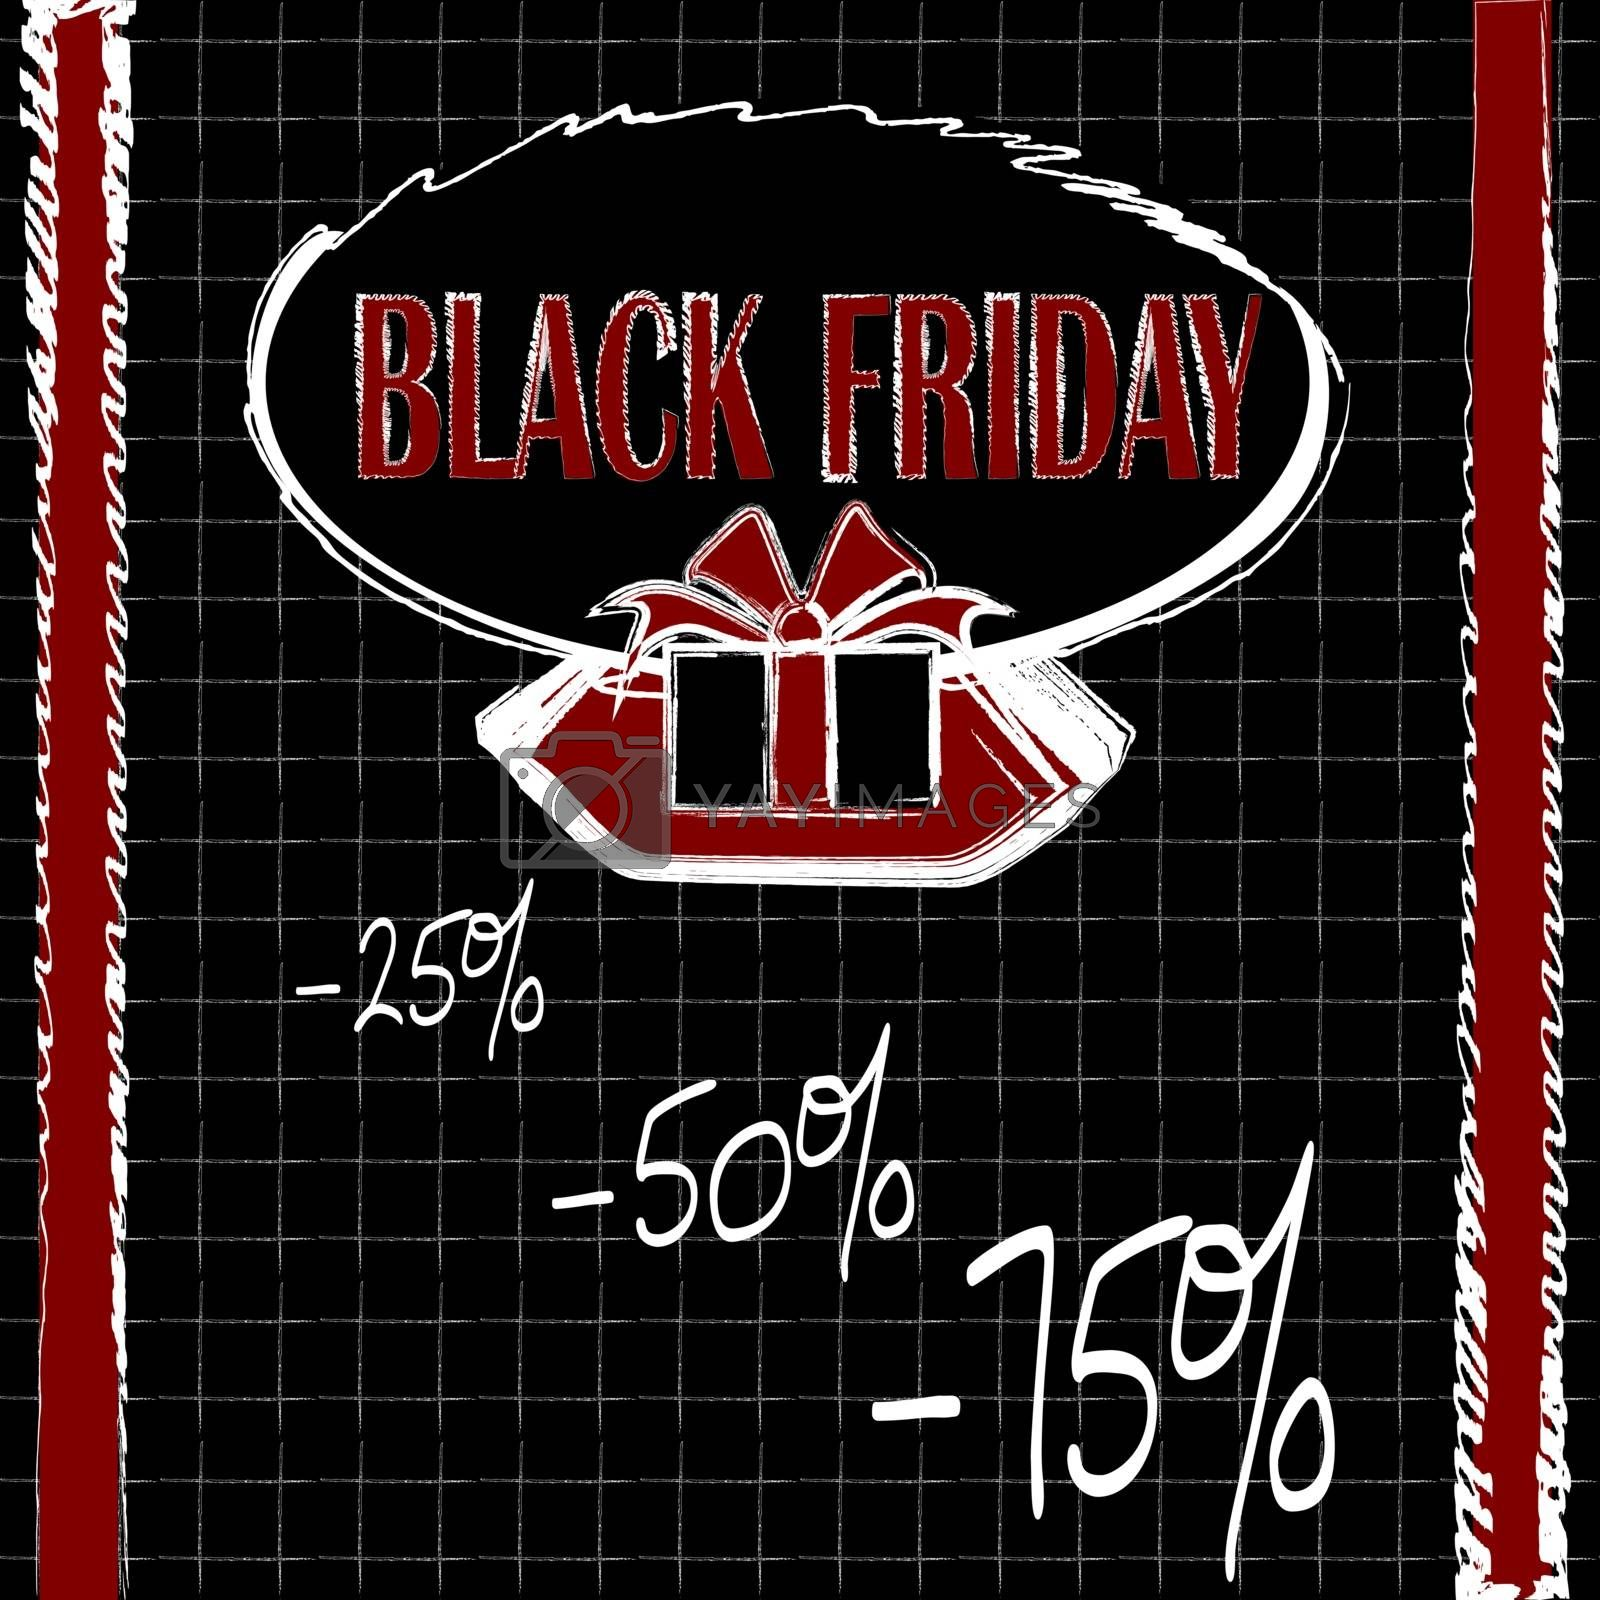 Chancellery black friday card, flyer or banner on notebook page background in black, white and red colors